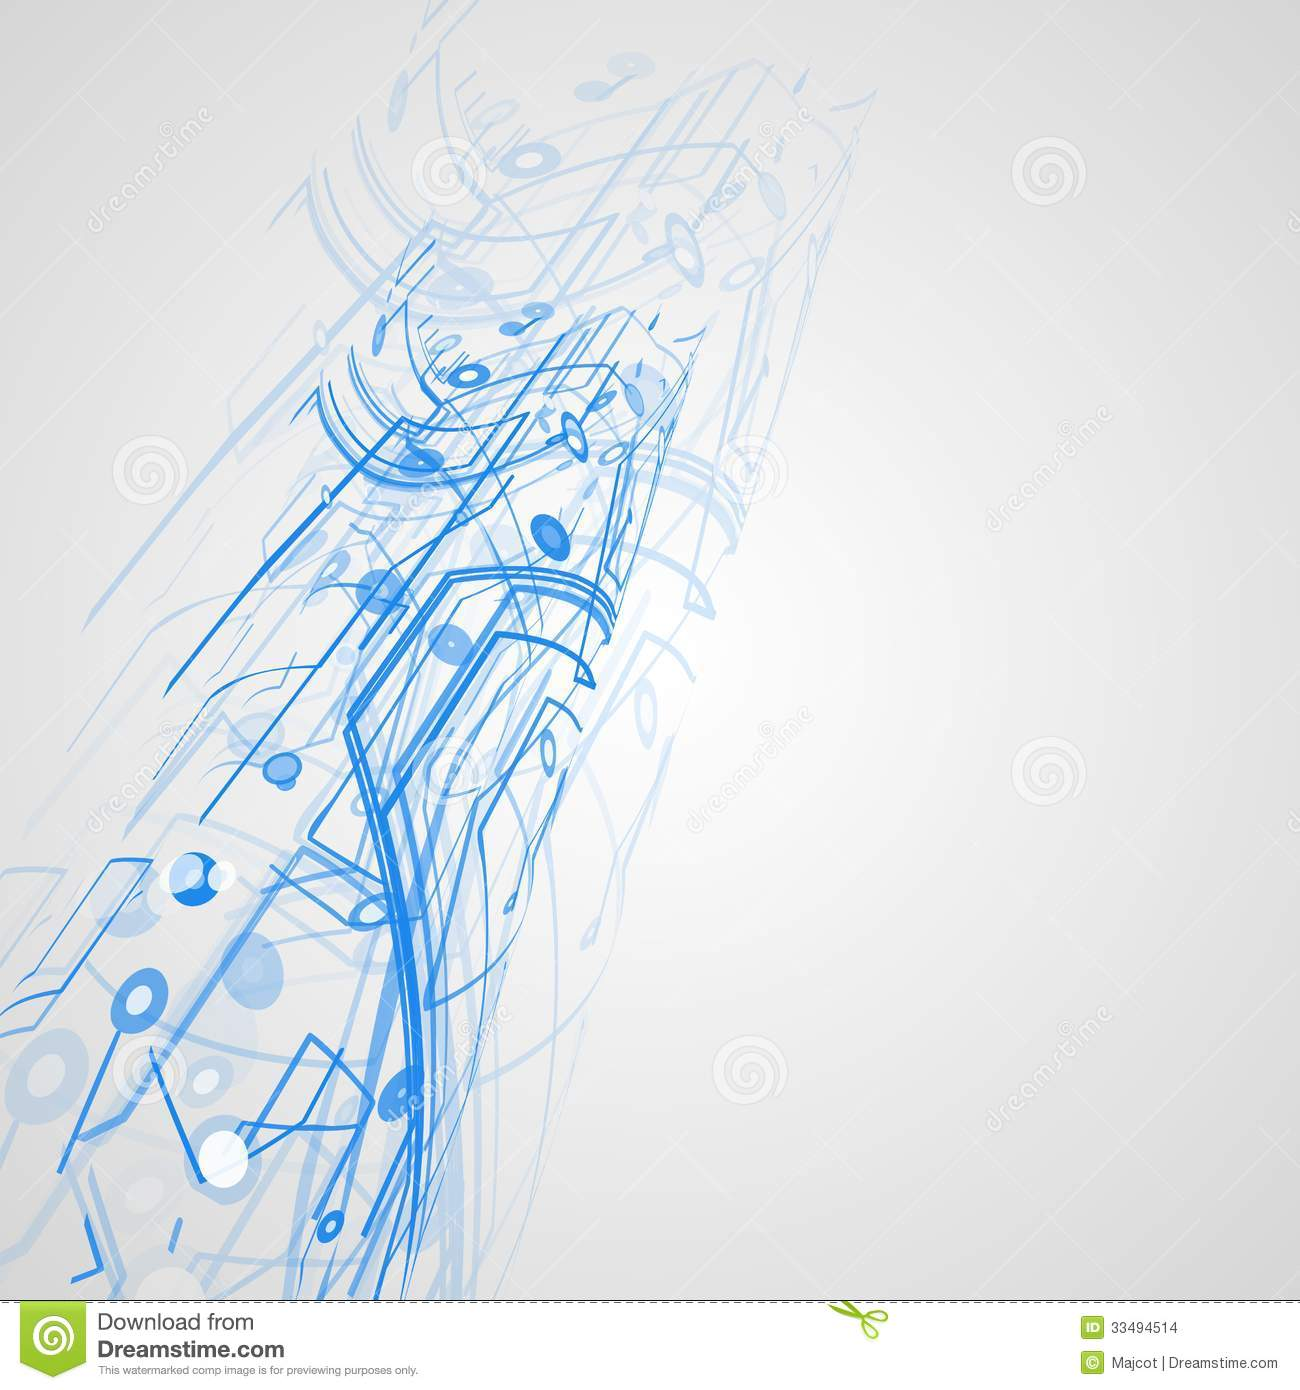 Computer Motherboard Printed Circuit Board Stock Photo Auto Images Image 7251734 Futuristic Technology Illustration